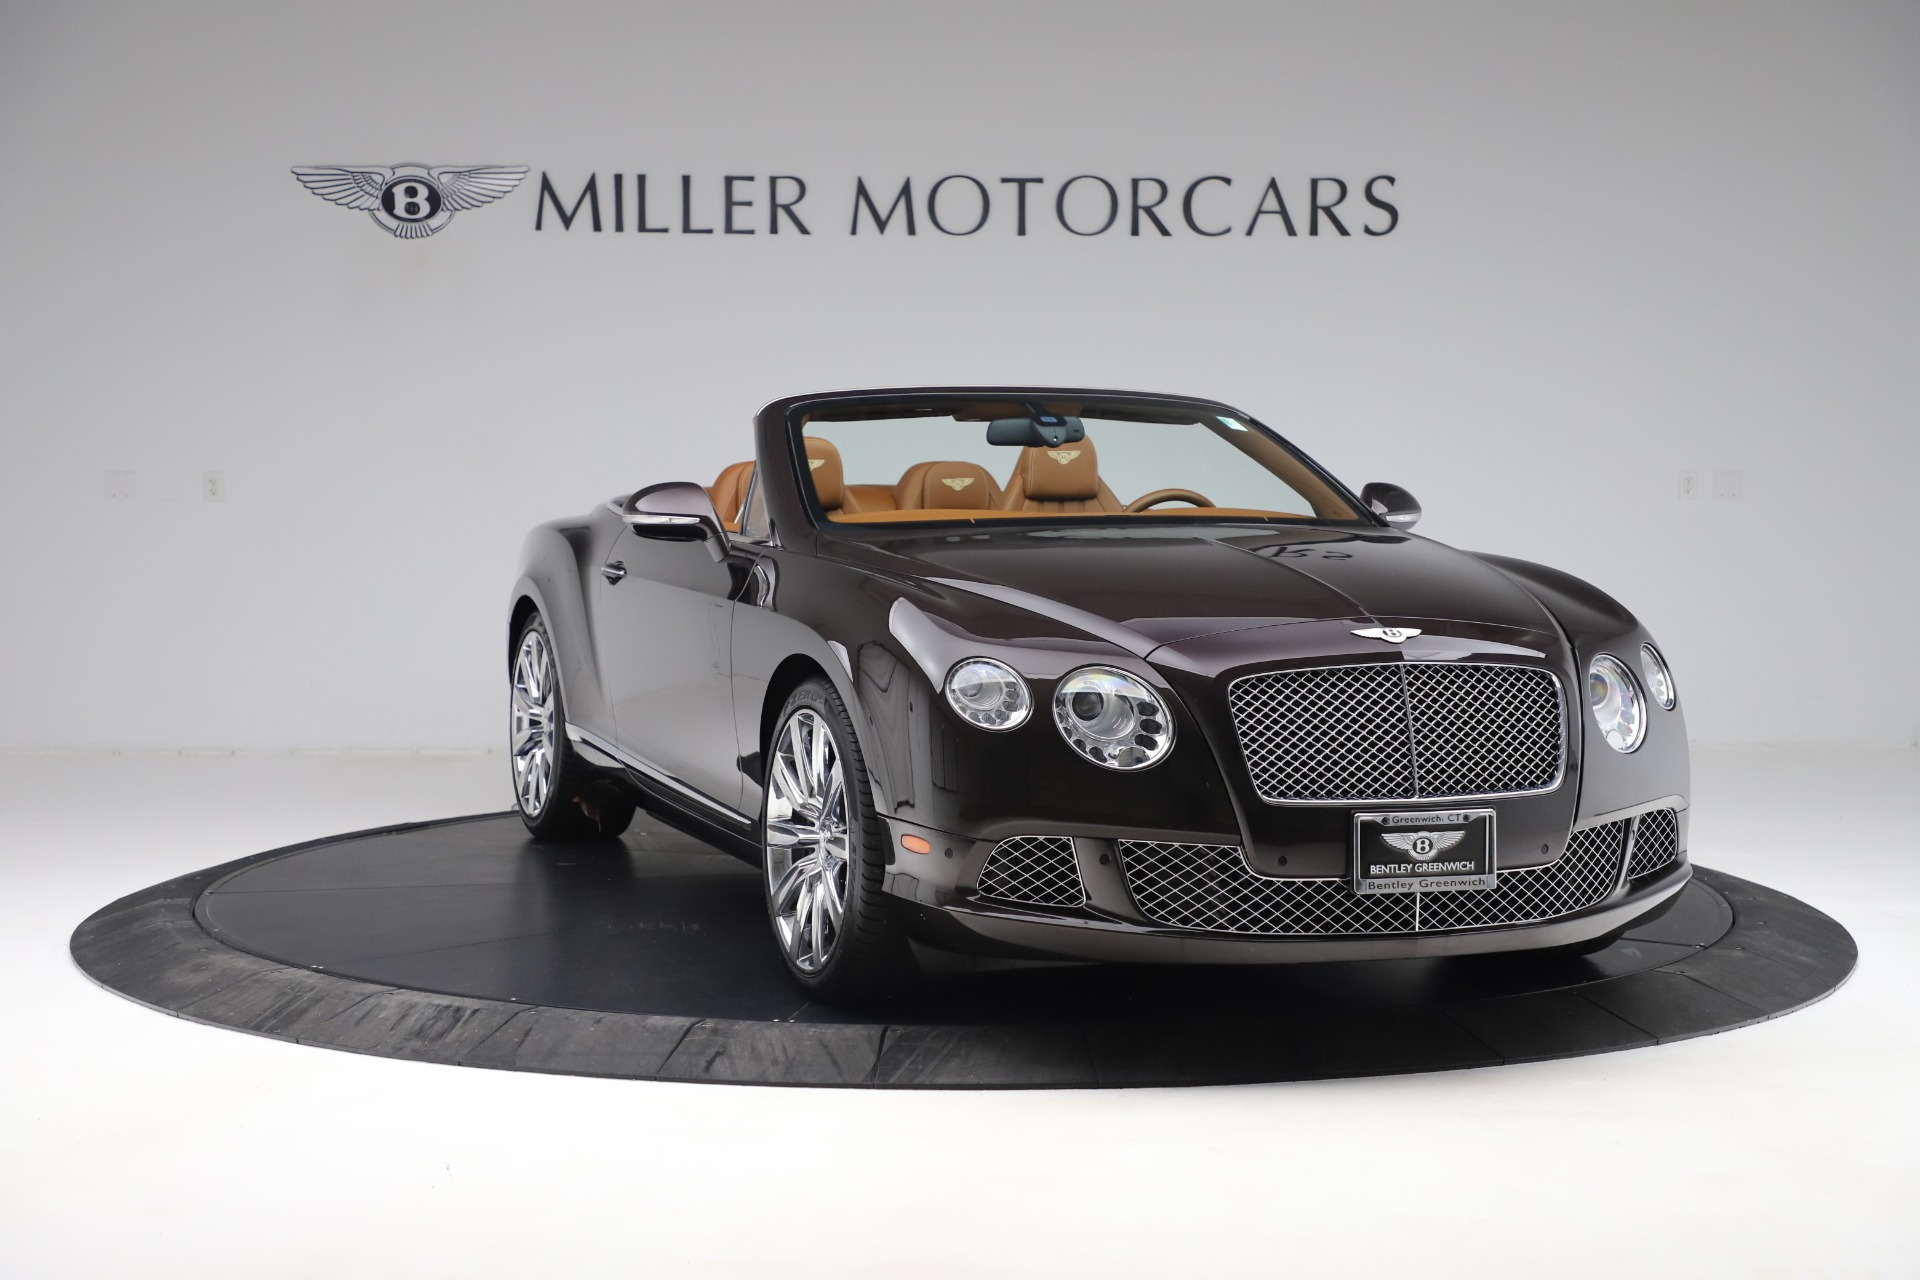 Used 2013 Bentley Continental GT W12 For Sale In Westport, CT 3505_p11